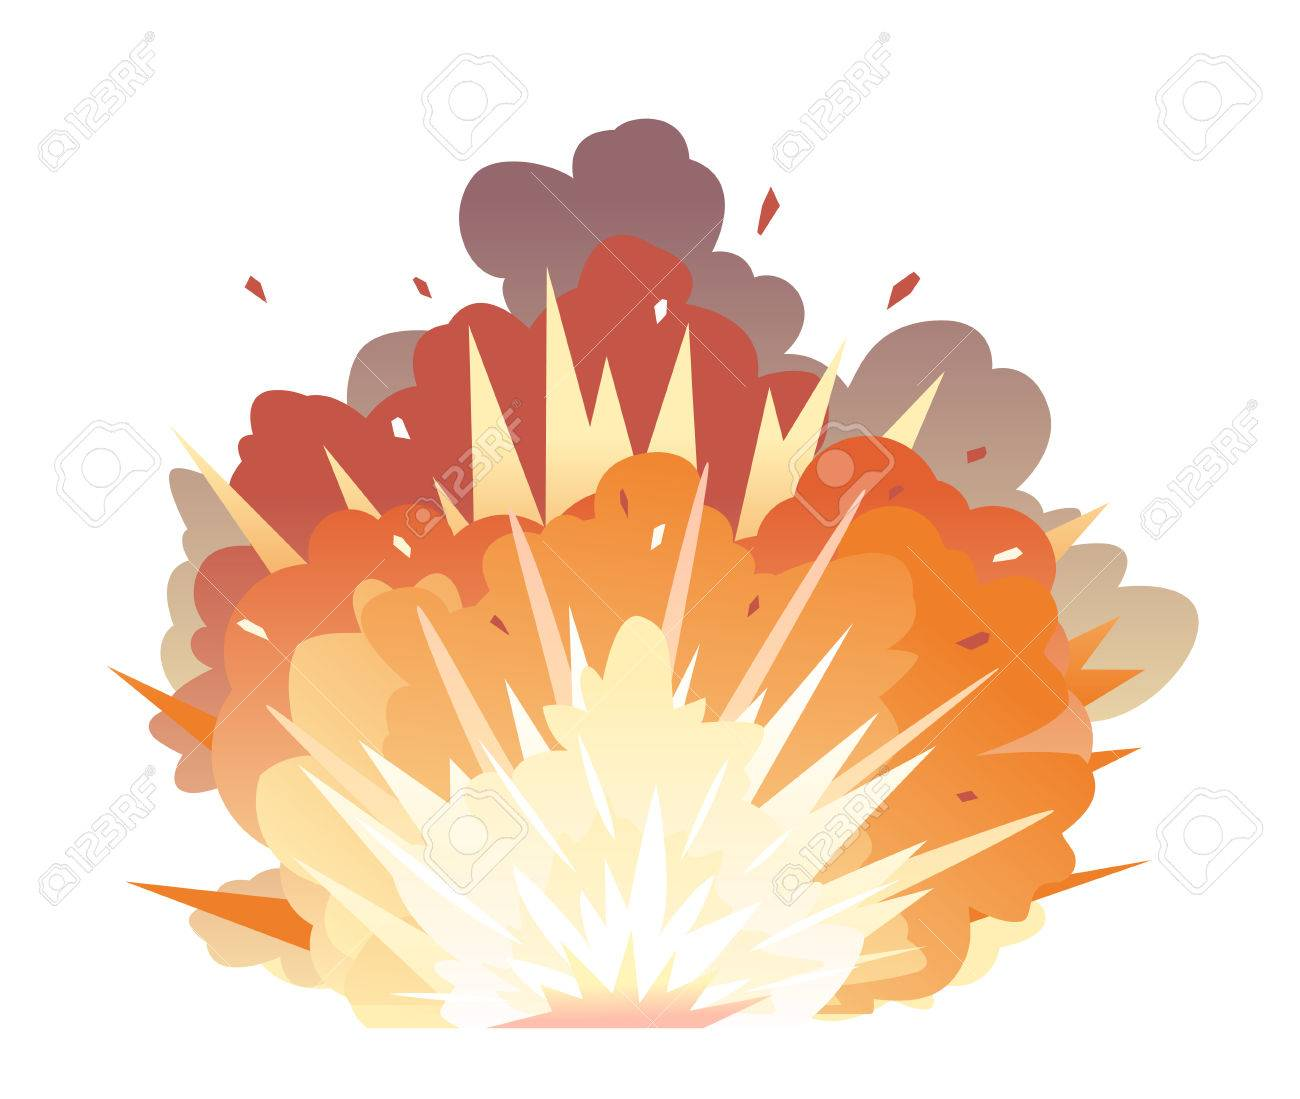 bomb explosion on ground royalty free cliparts vectors and stock illustration image 84412573 bomb explosion on ground